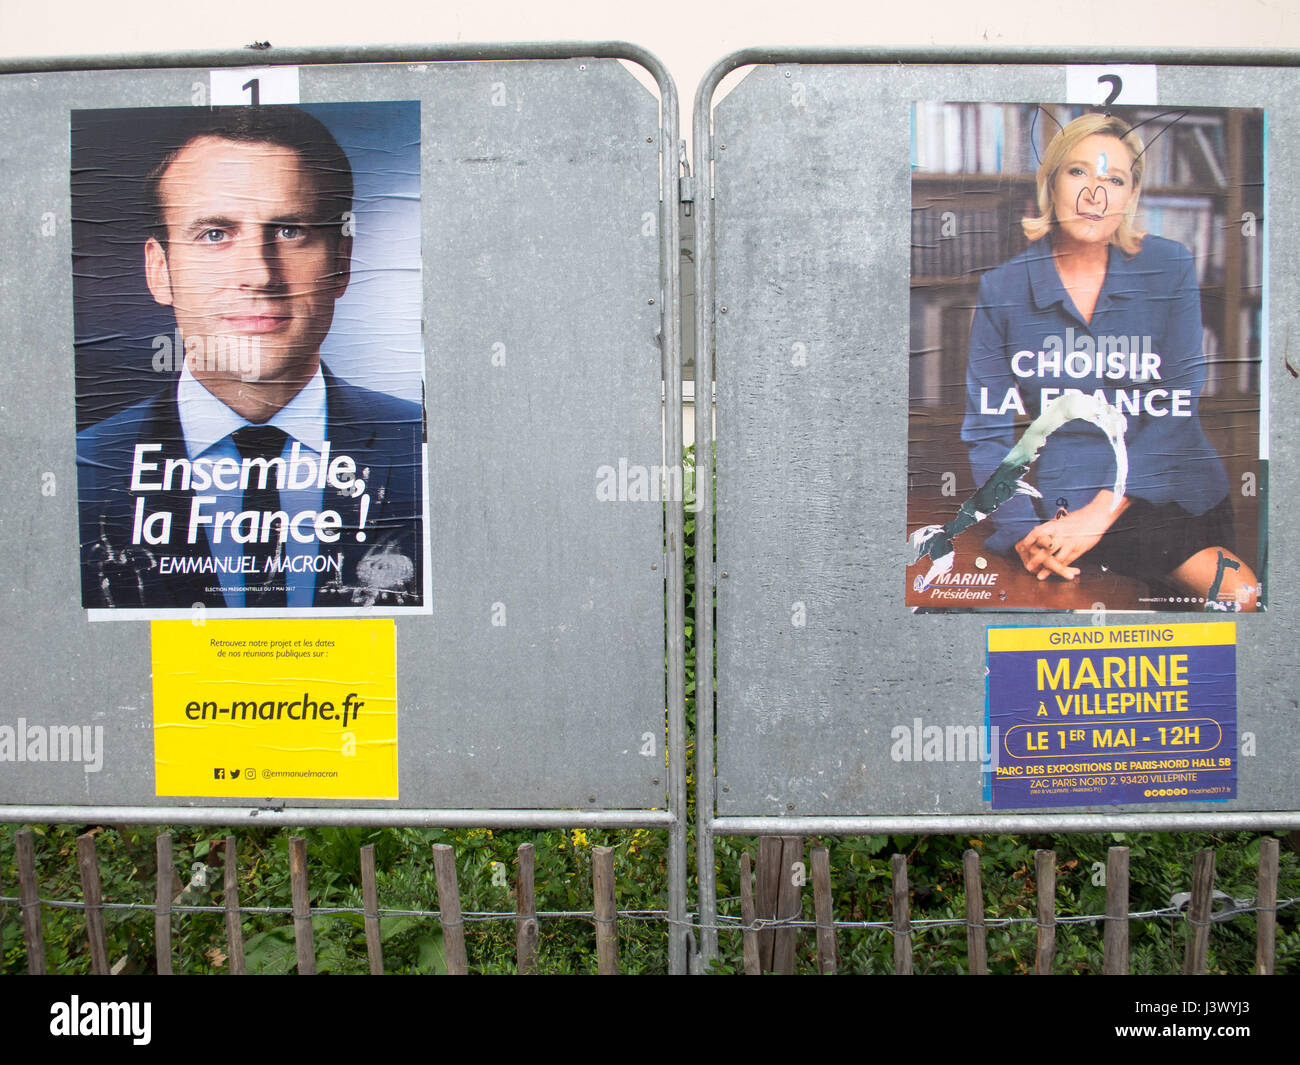 France elections 2017 live - Presidential Elections In France 2017 Emmanuel Macron 65 5 Wins French Presidential Election